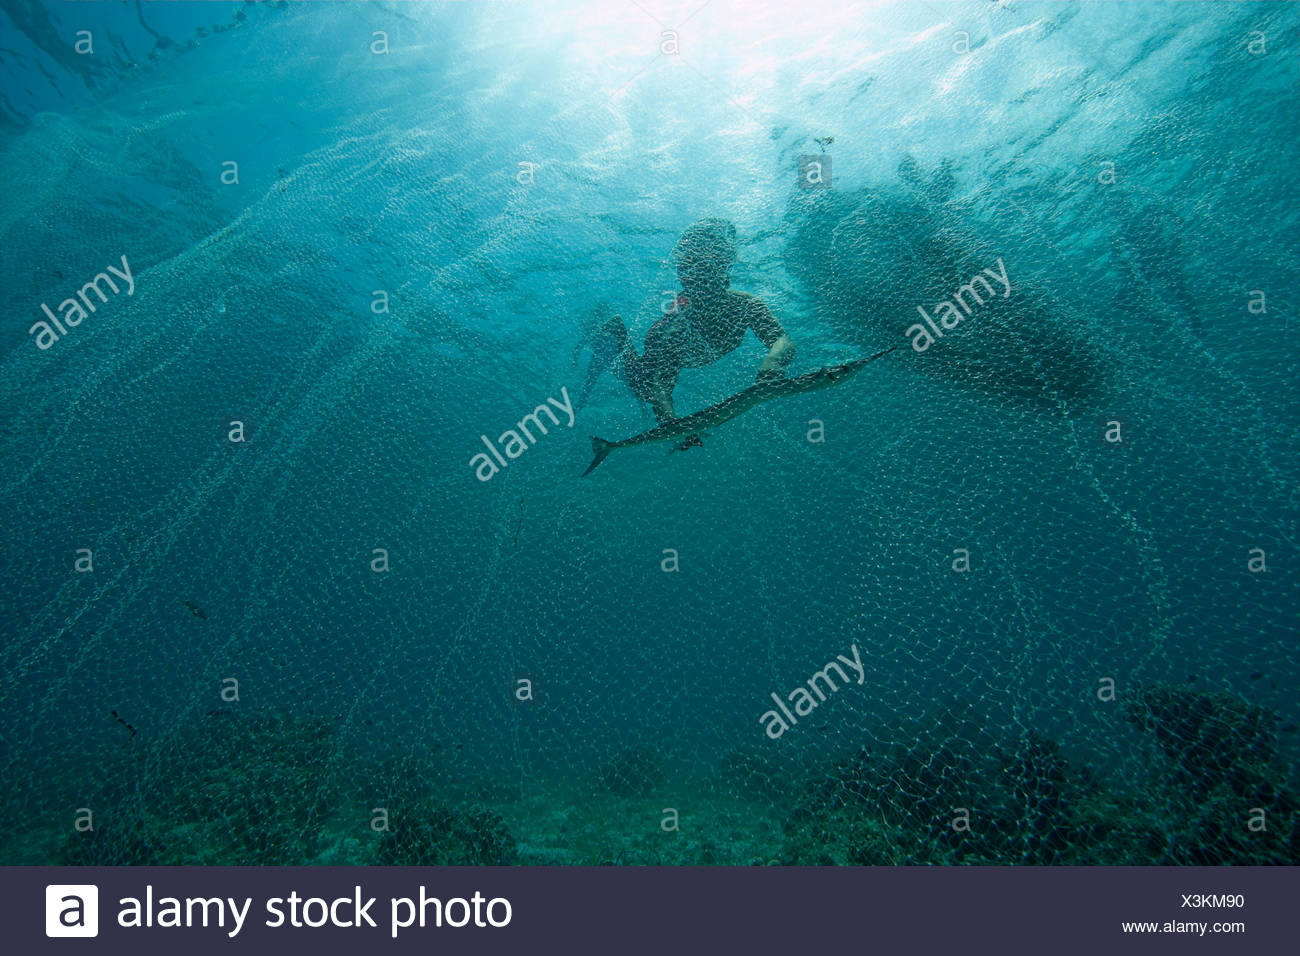 Fisher catch Pacific needlefish with a net, Philippines - Stock Image